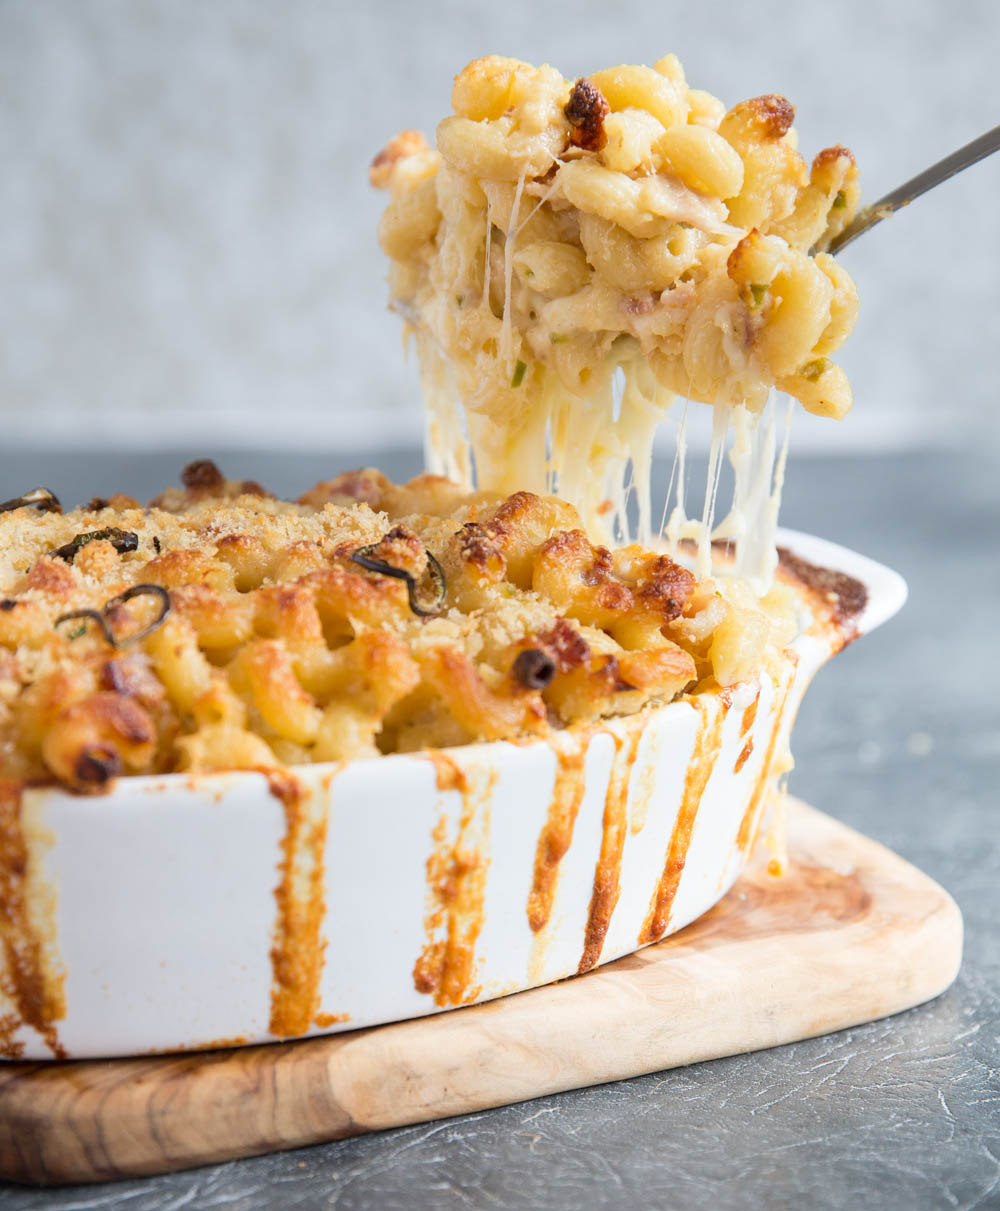 Spicy mac and cheese with bacon fresh out the oven